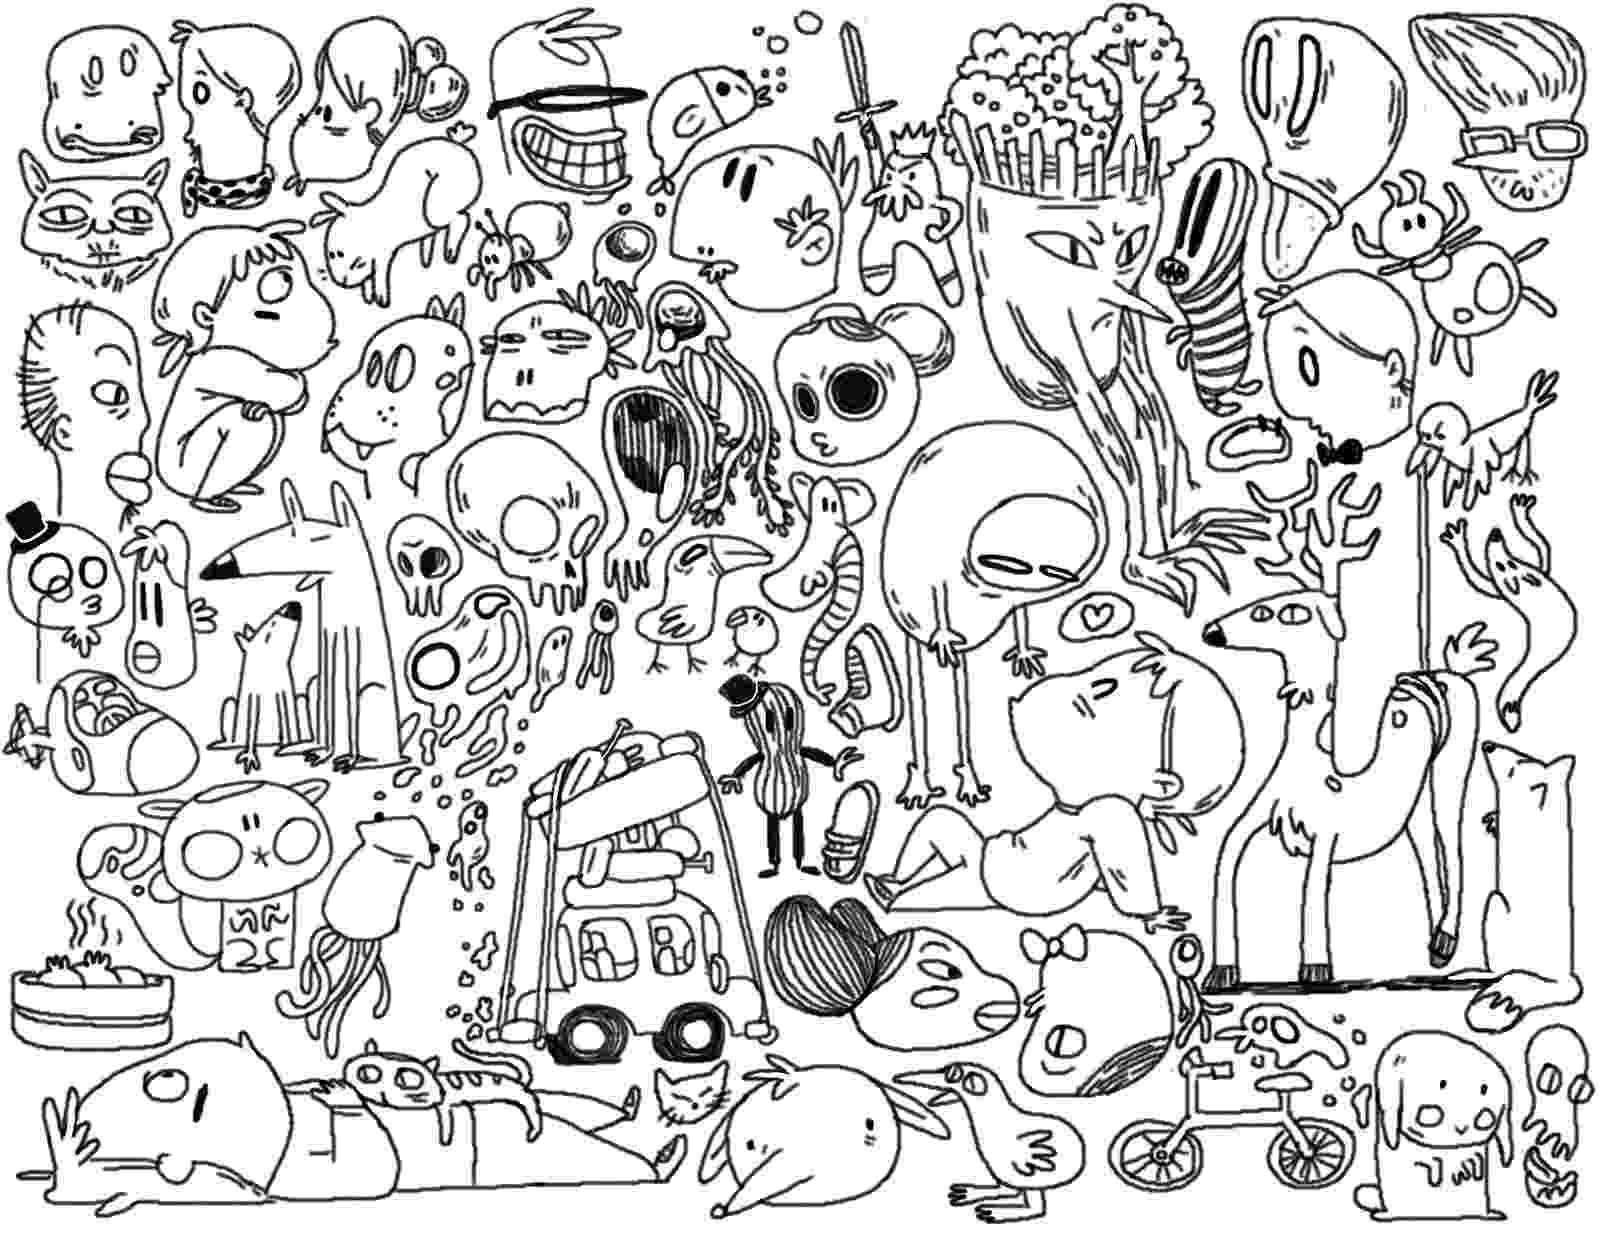 doodle art printables doodle happy new year 2016 doodle art doodling adult art printables doodle